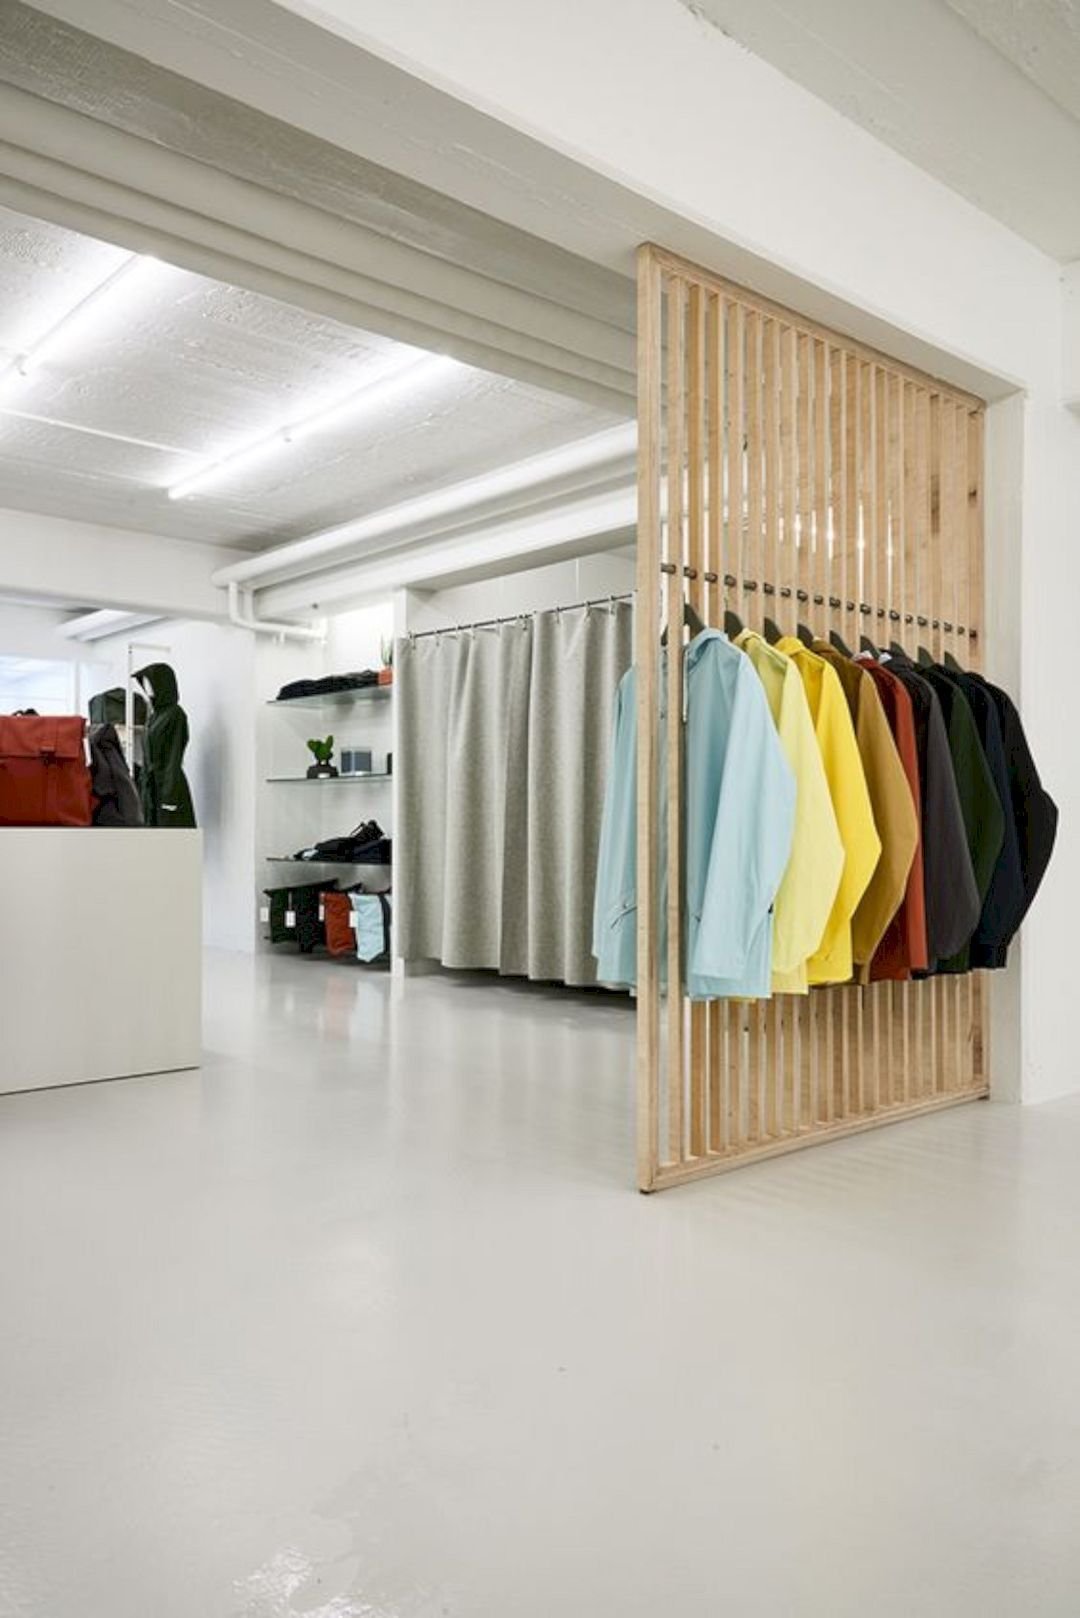 15 Shop Display Interior Design Ideas to Attract More Buyers ...